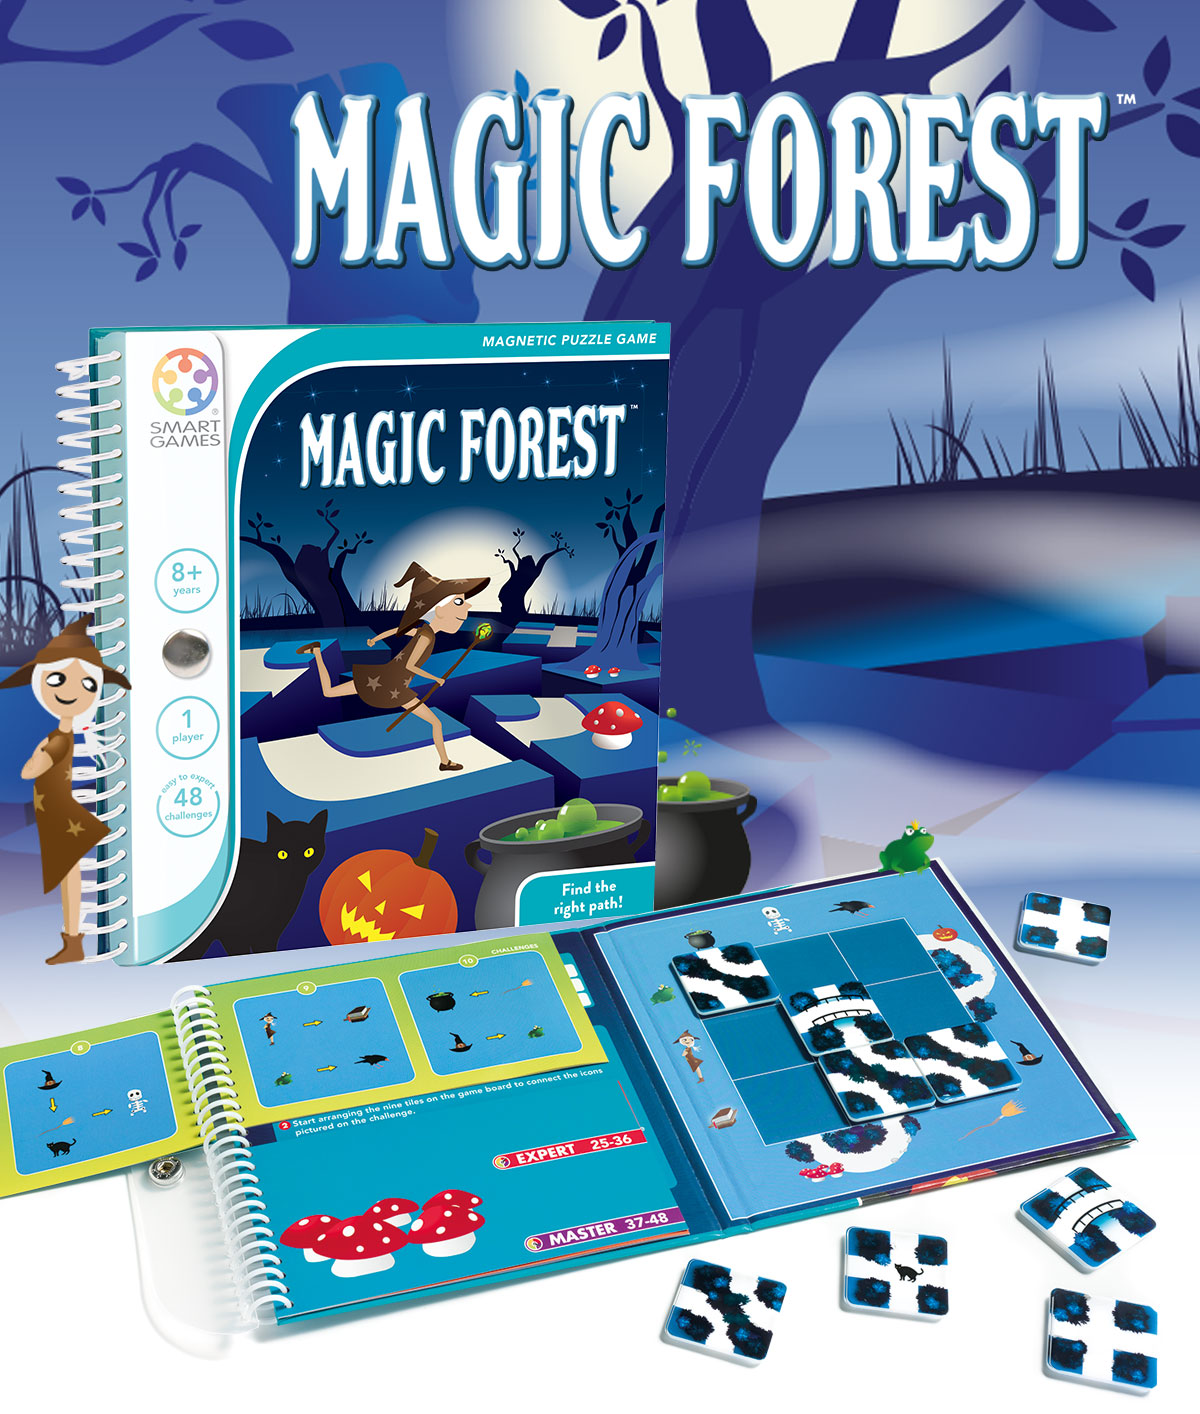 Magic Forest Smartgames Circuit Boards Like Appears